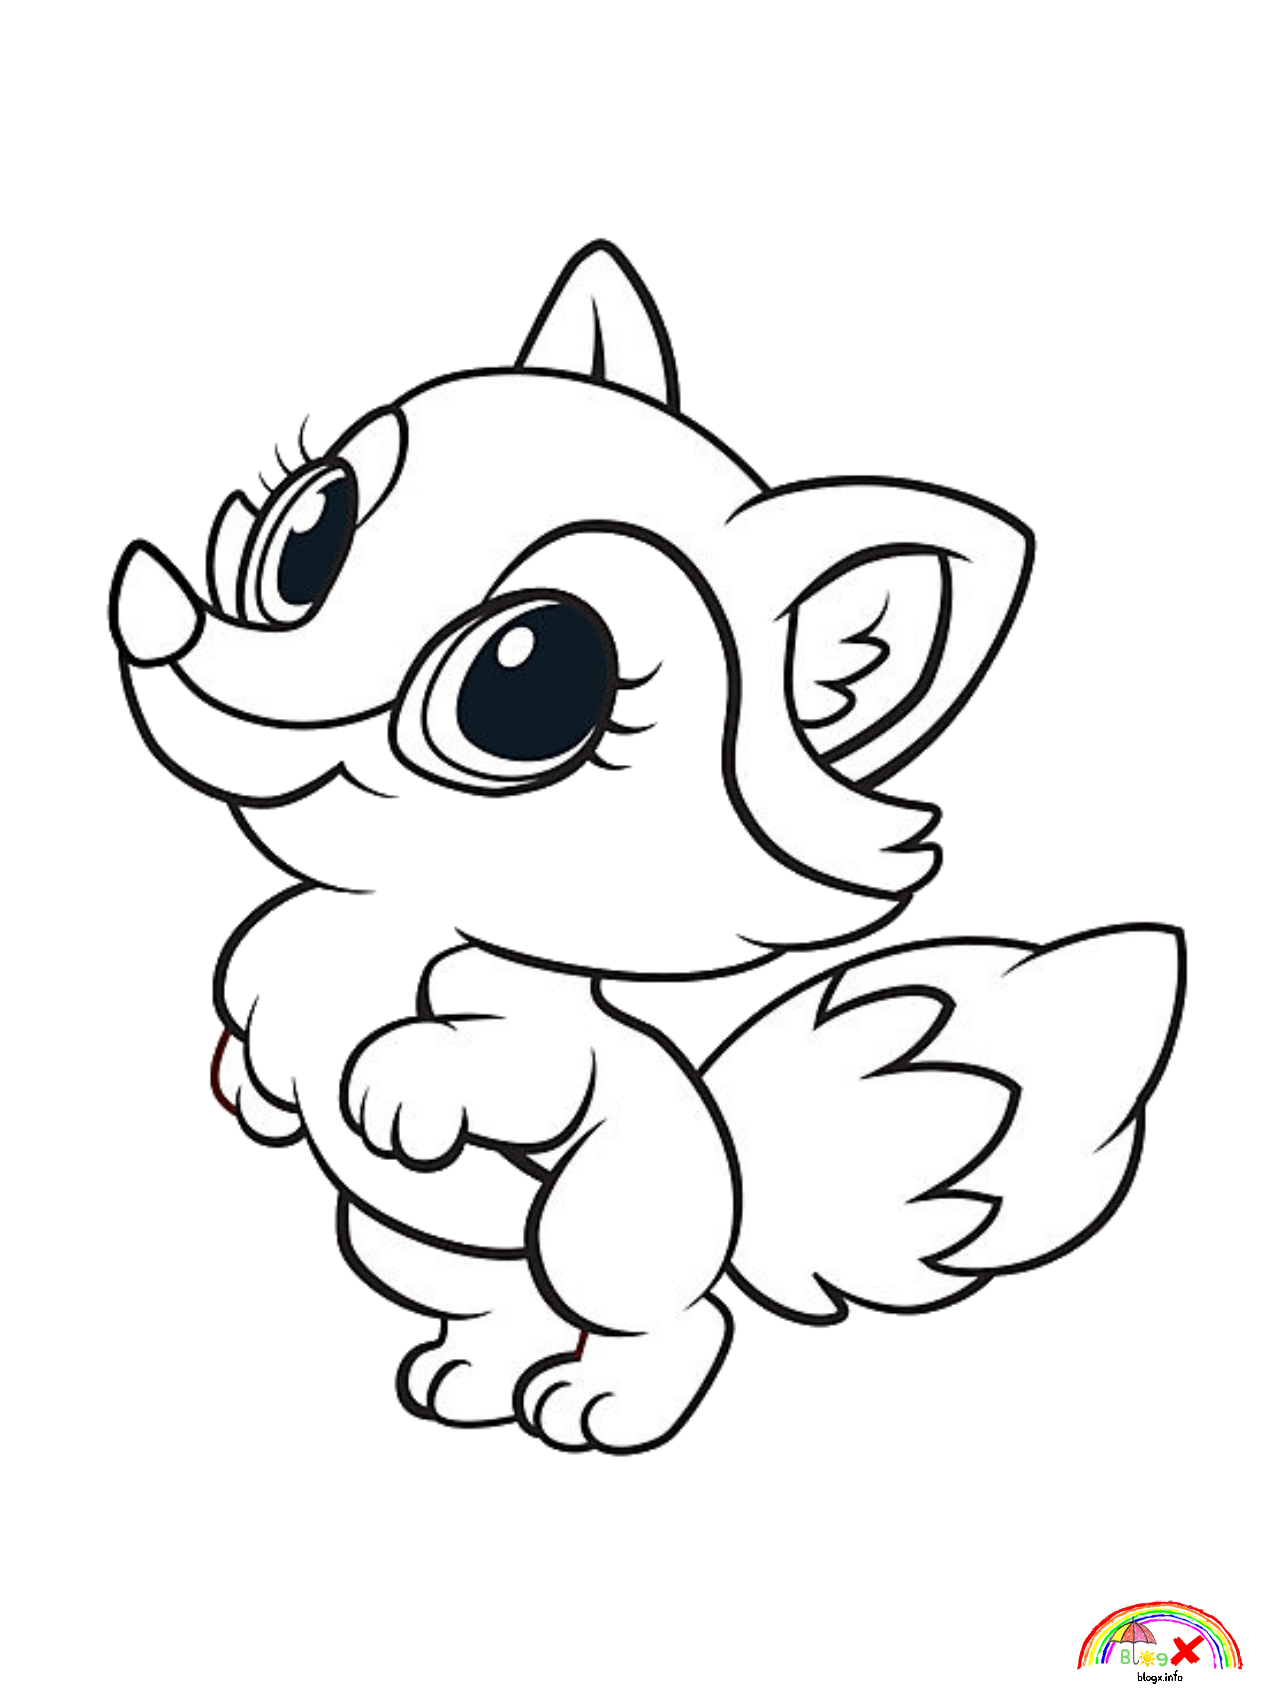 Pin By Harry Sv On Dibujar Animalitos Fox Coloring Page Cute Coloring Pages Animal Coloring Pages